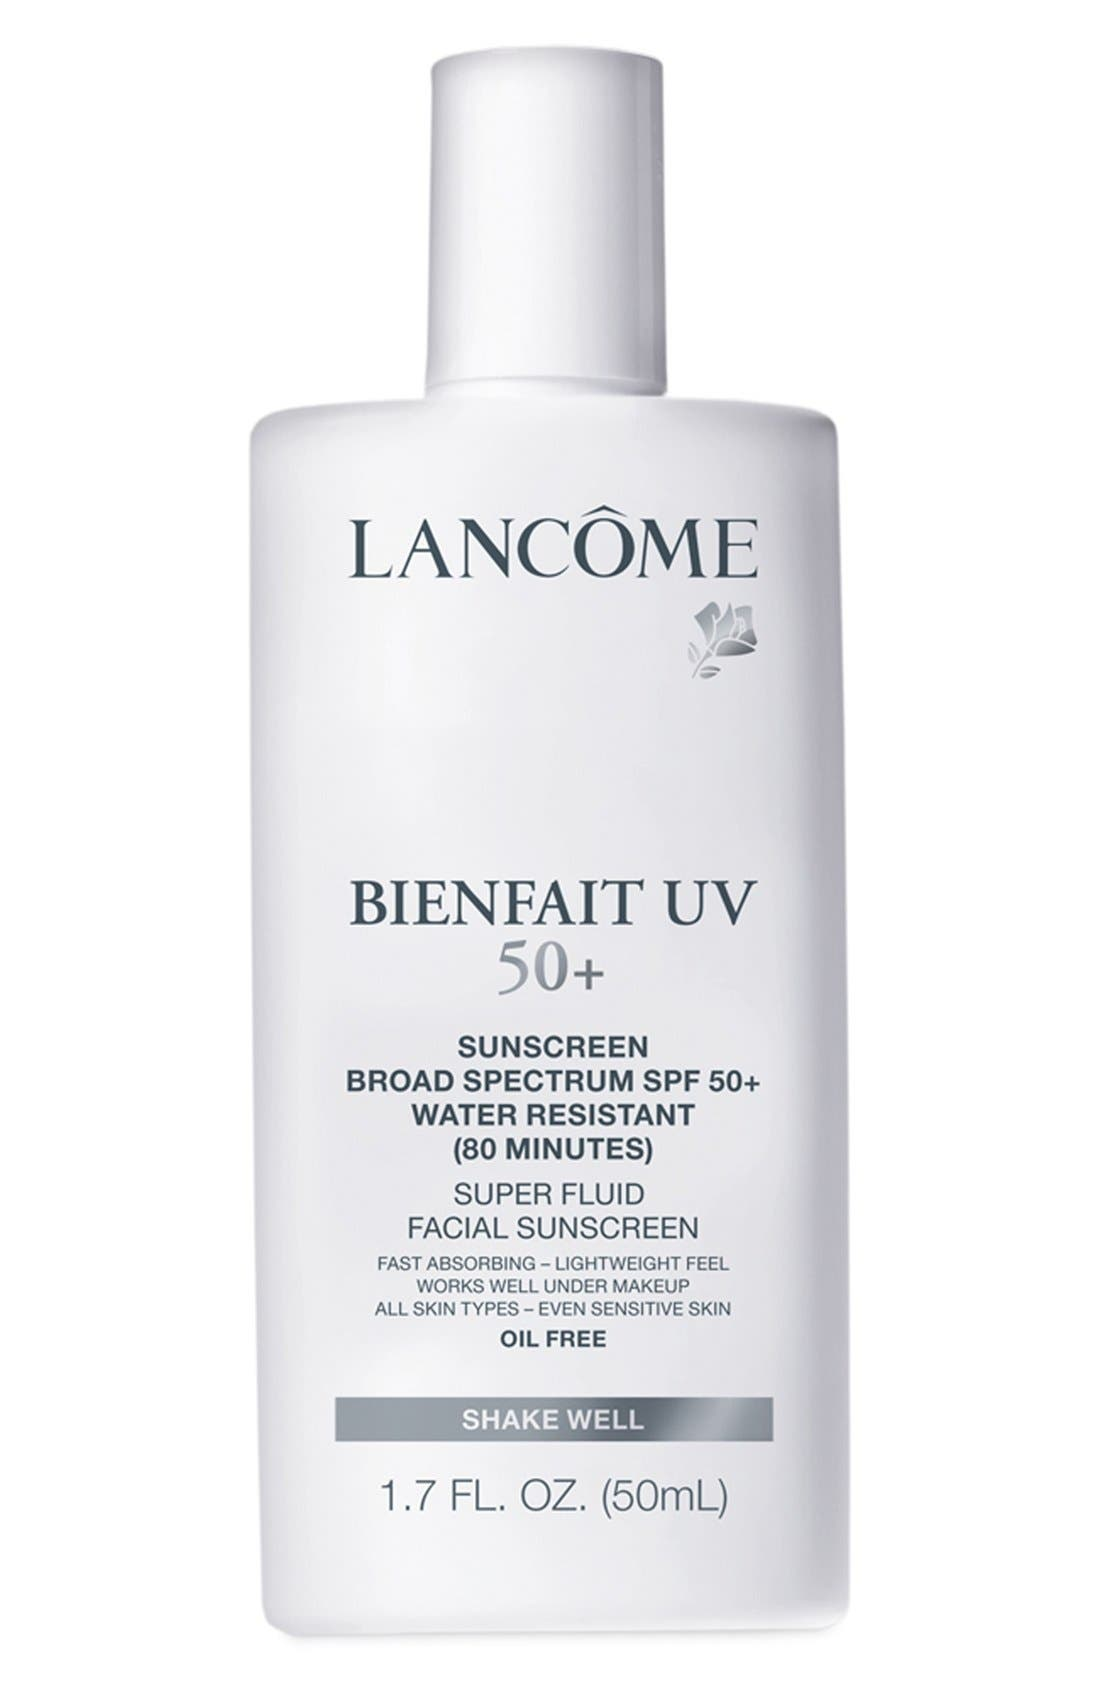 Lancôme Bienfait UV Super Fluid Facial Sunscreen SPF 50+